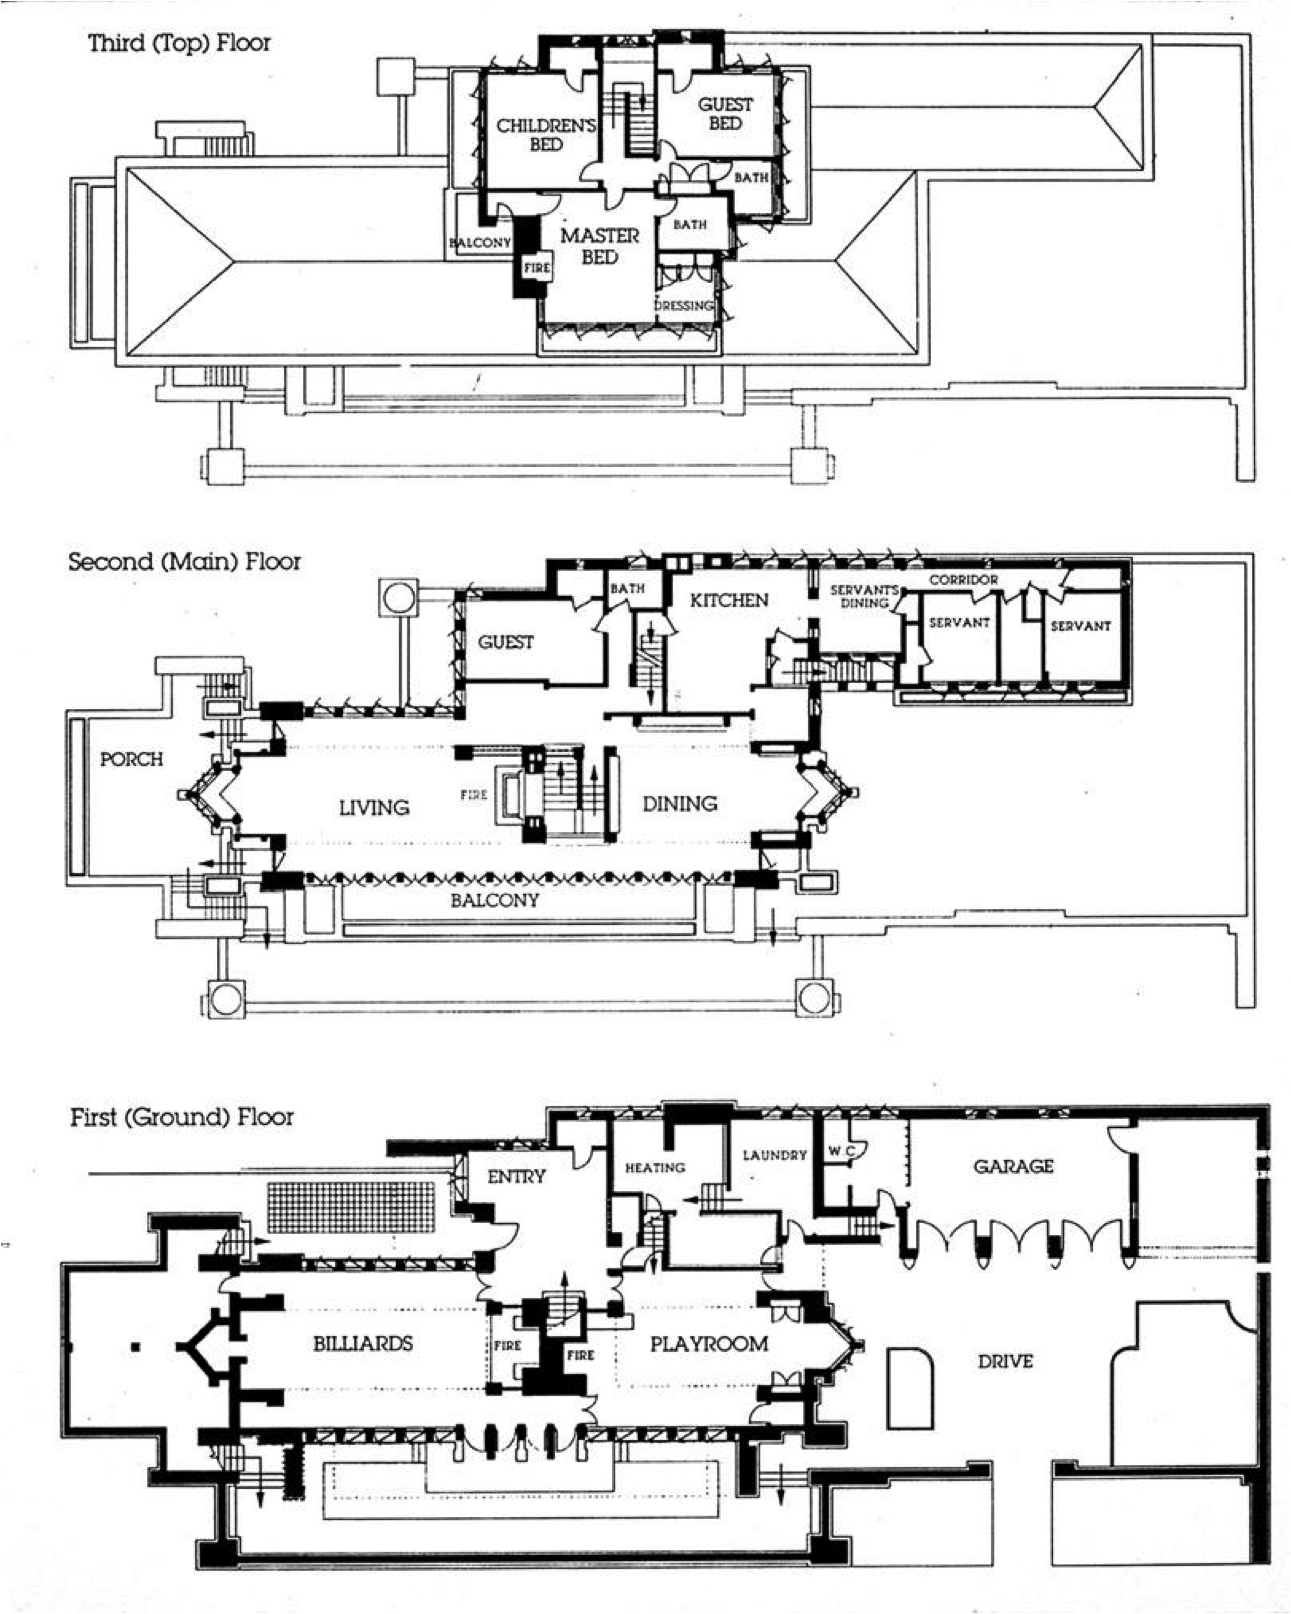 Frank lloyd wright house plans pesquisa google plans Frank lloyd wright house plans free